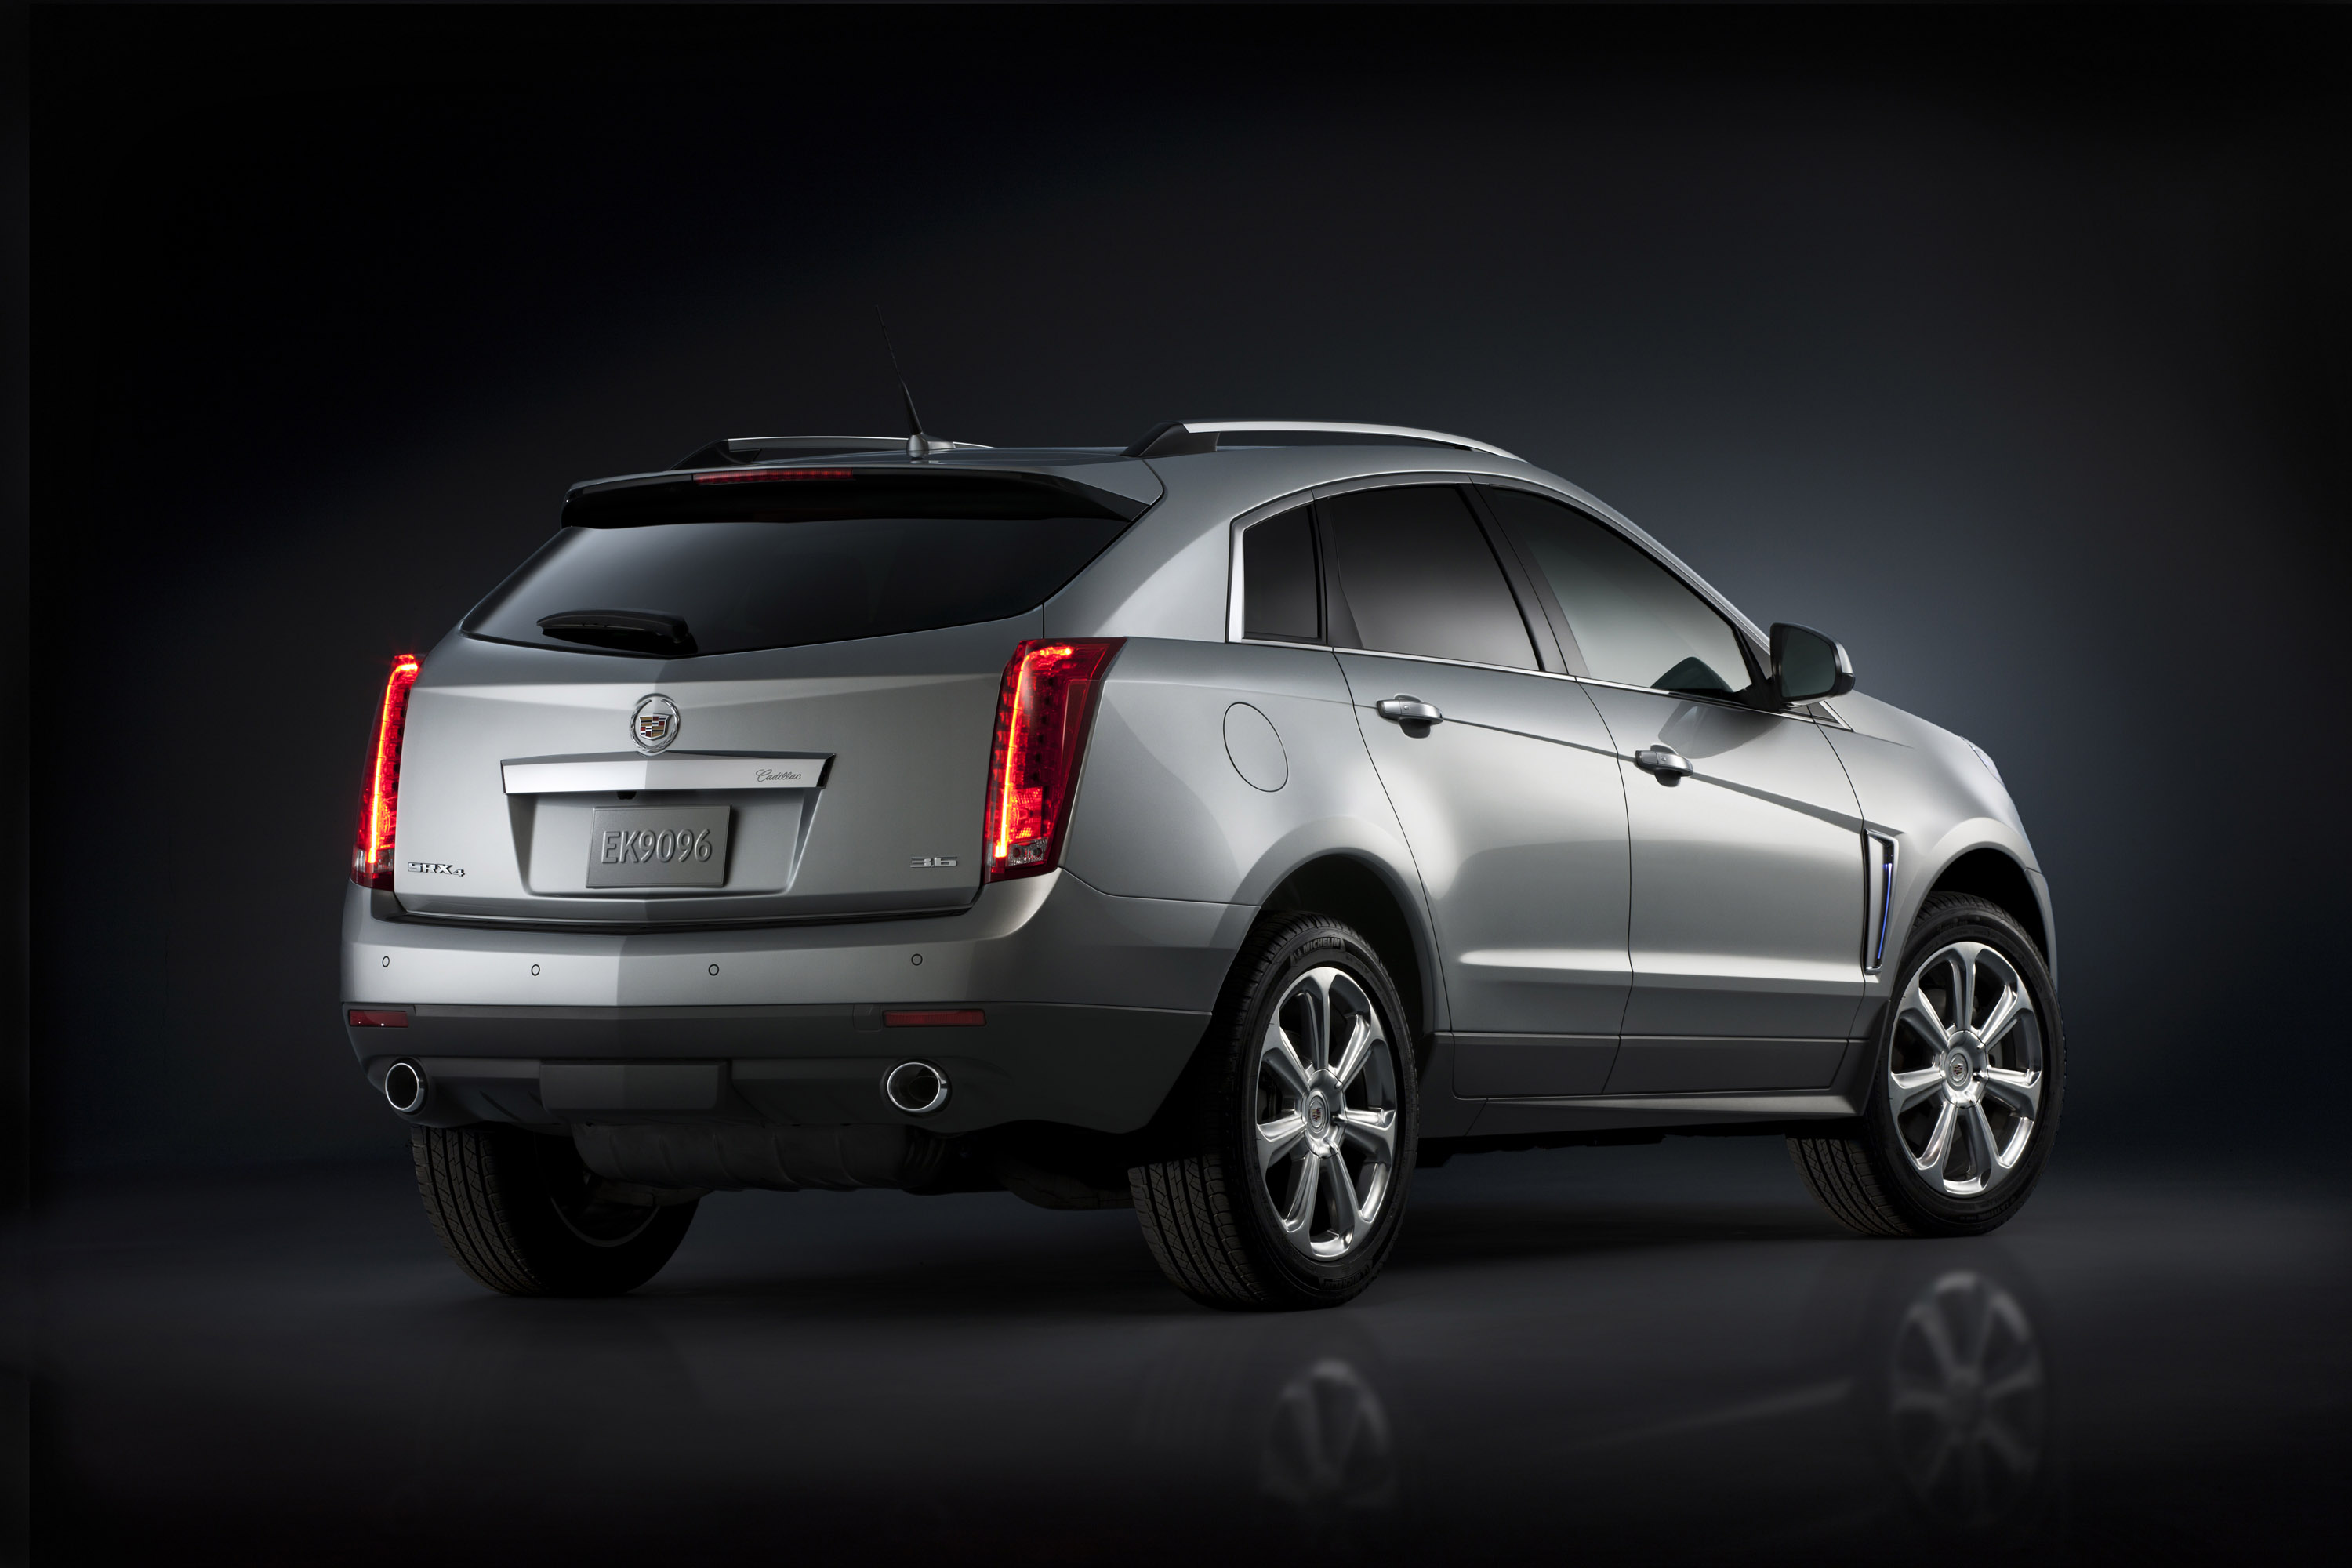 turbocharged srx charged model authority turbo gm report discontinued blog discontinues cadillac